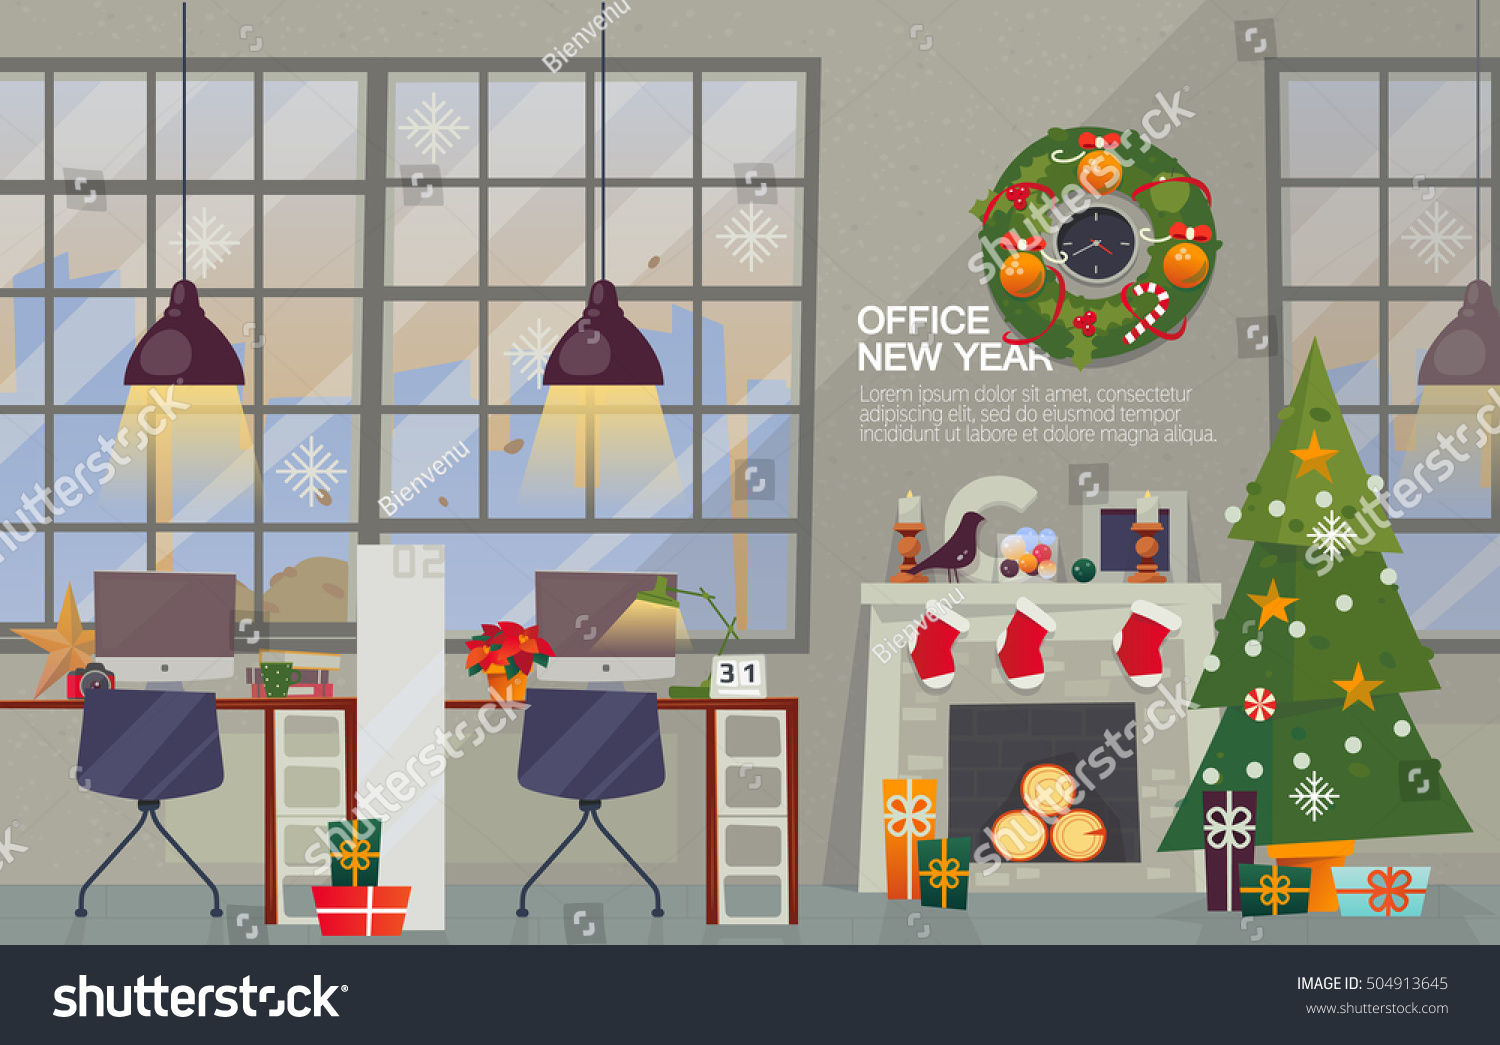 Modern Office Interior Workplace With Decorations For The New Year Vector Flat Style Merry